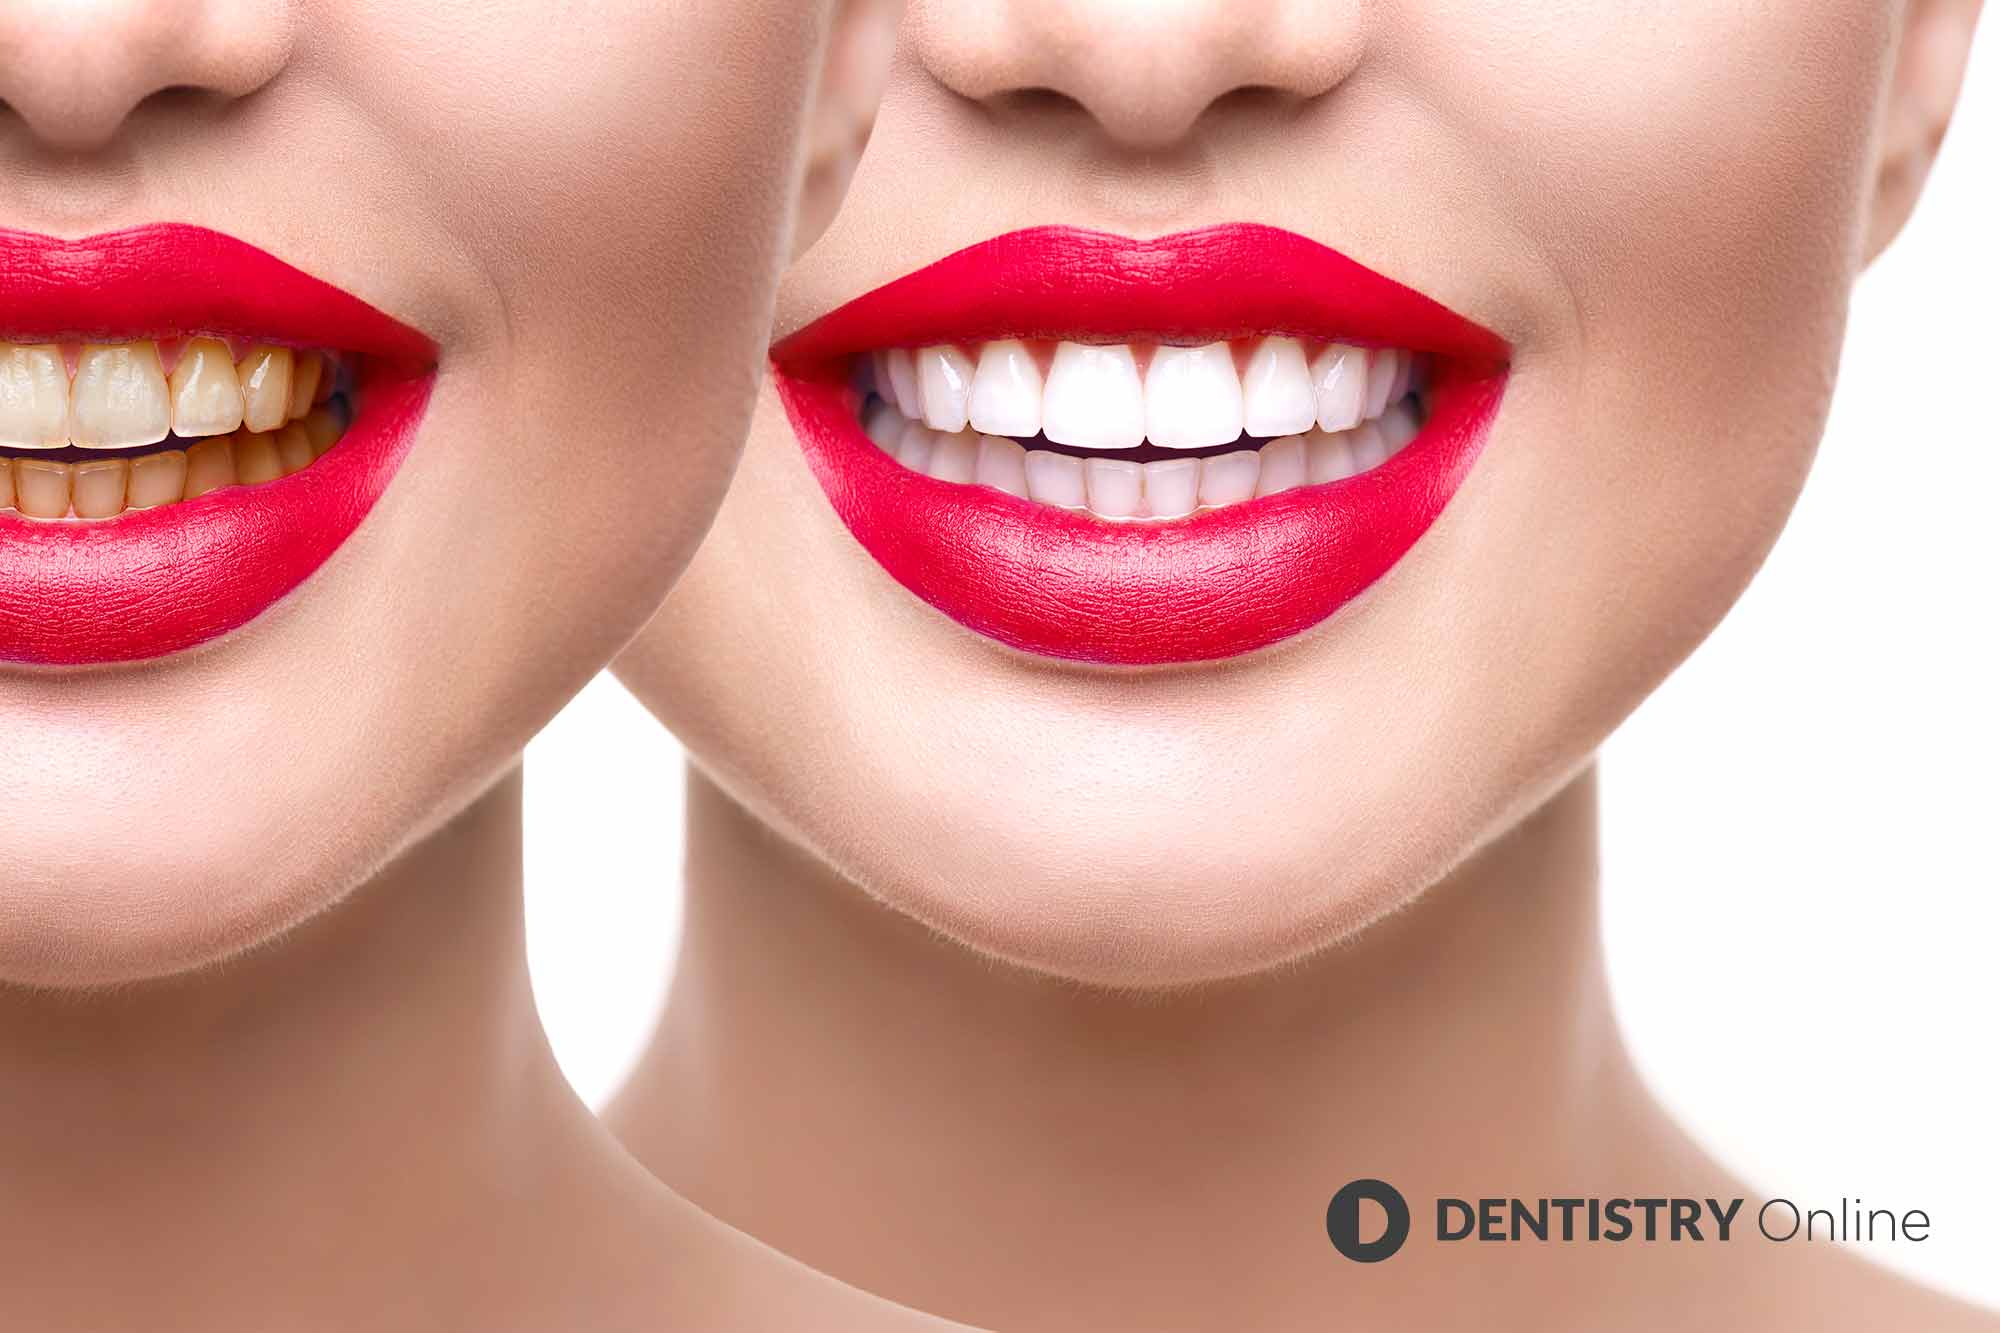 Bitten by the whitening bug. The general public is still worryingly unaware of the legal requirement for tooth whitening to be performed only by dental professionals